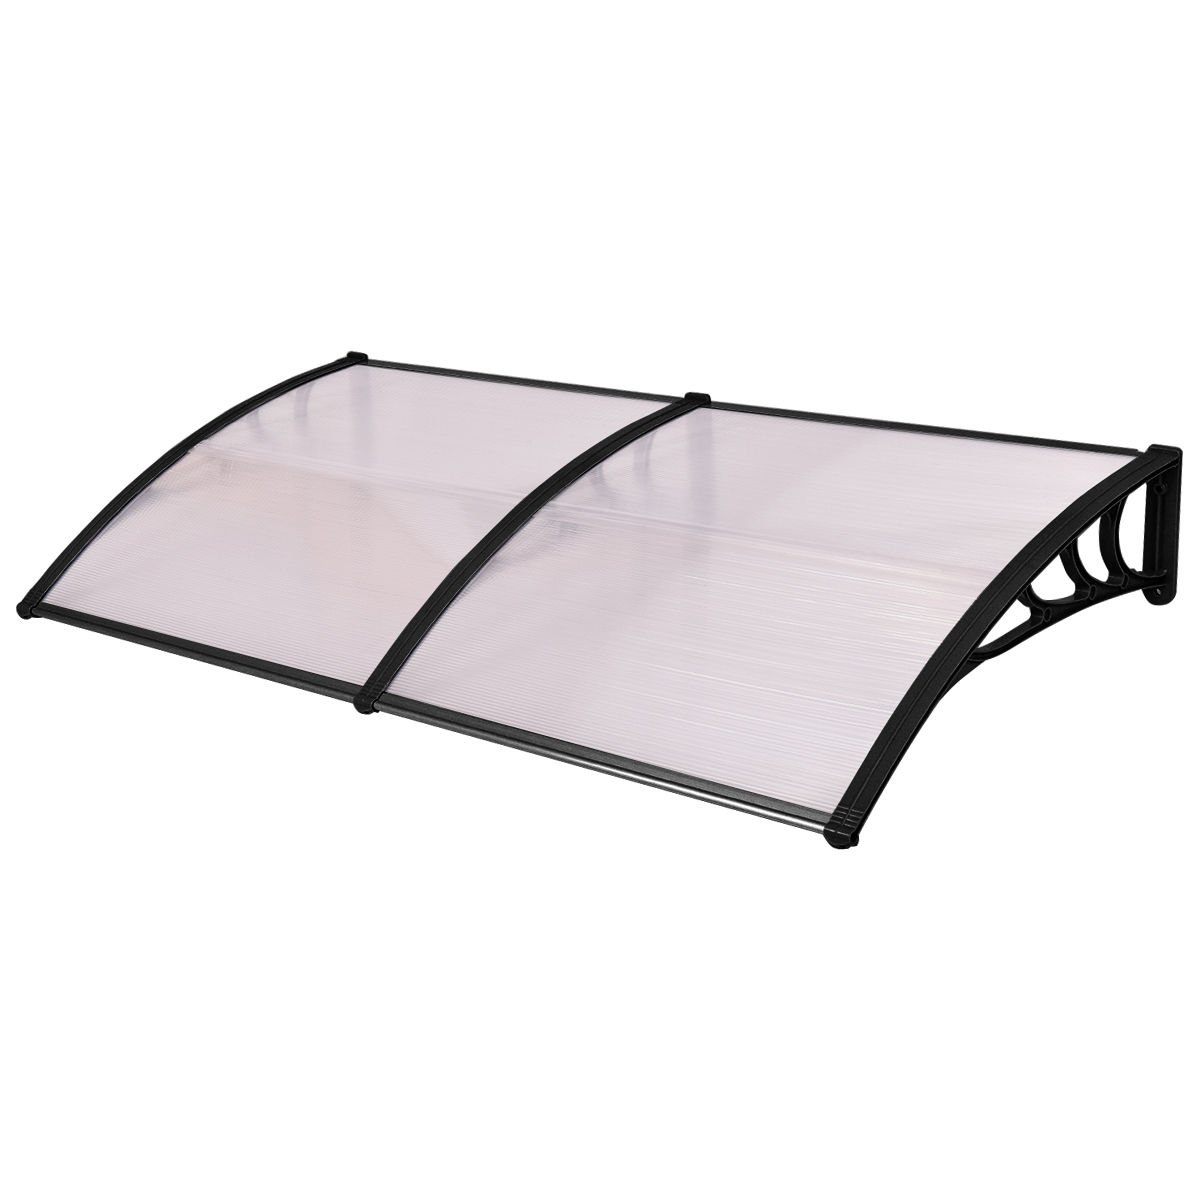 Tangkula 40''x 80'' Window Awning Modern Polycarbonate Cover Front Door Outdoor Patio Canopy Sun shetter 3 Colors (Clear with Black Edge) by TANGKULA